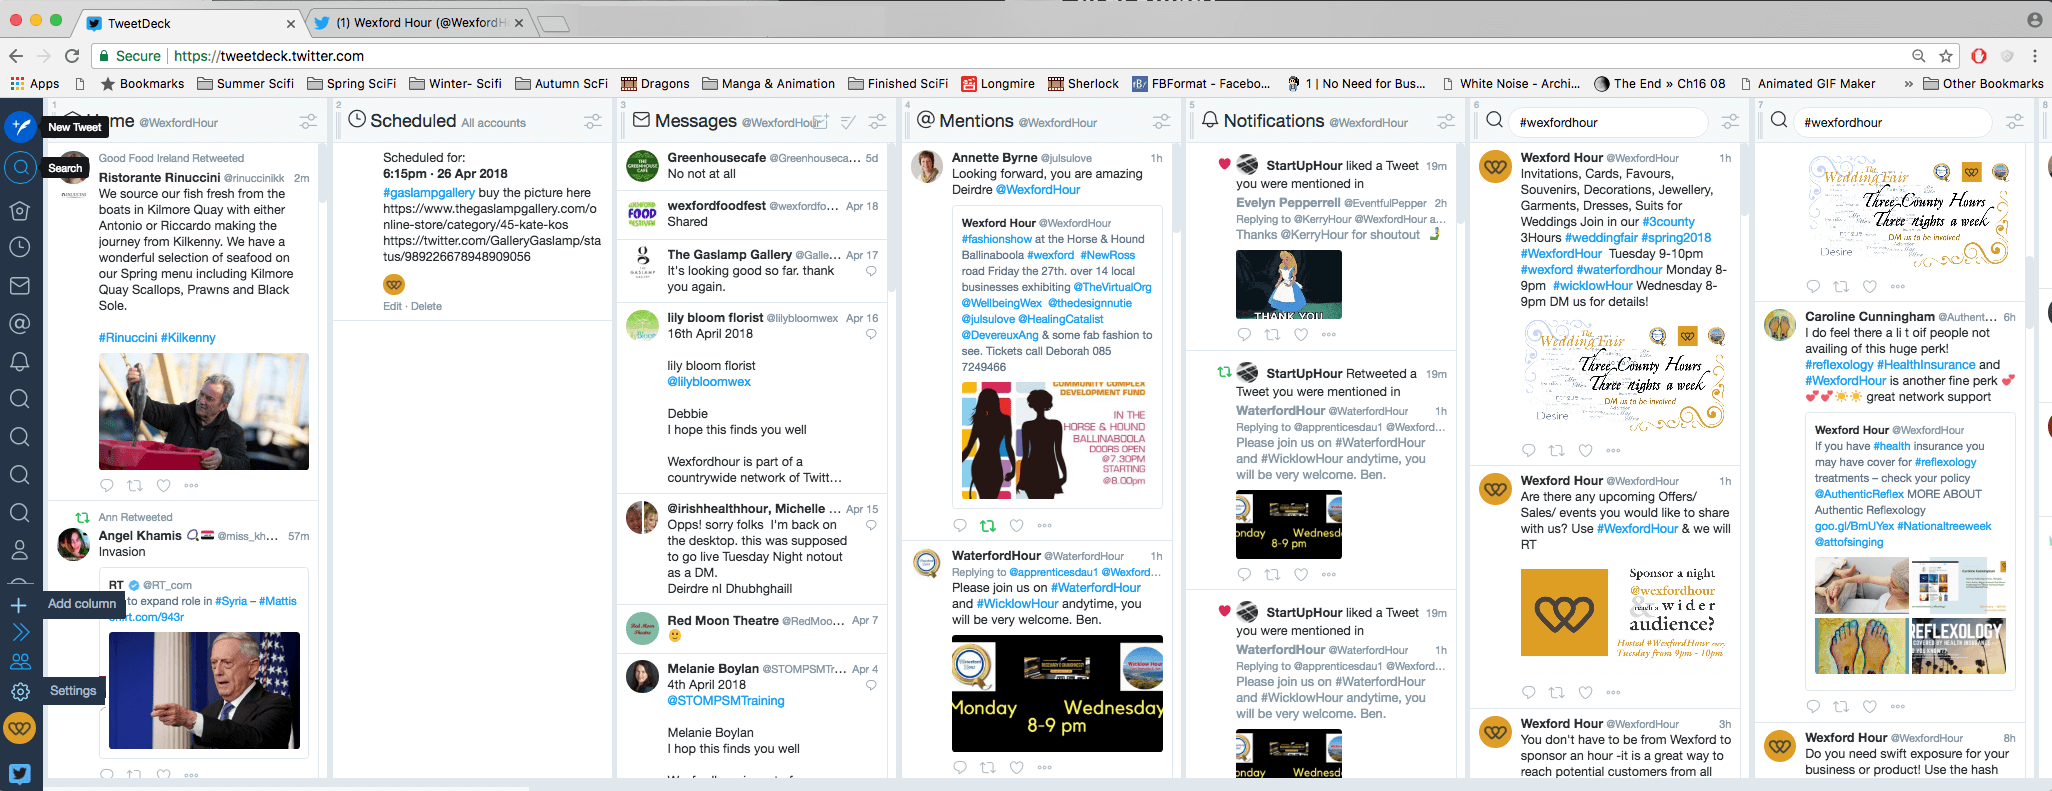 QuickGuide to using Tweetdeck for Twitter Chats « 2D Graphic Design